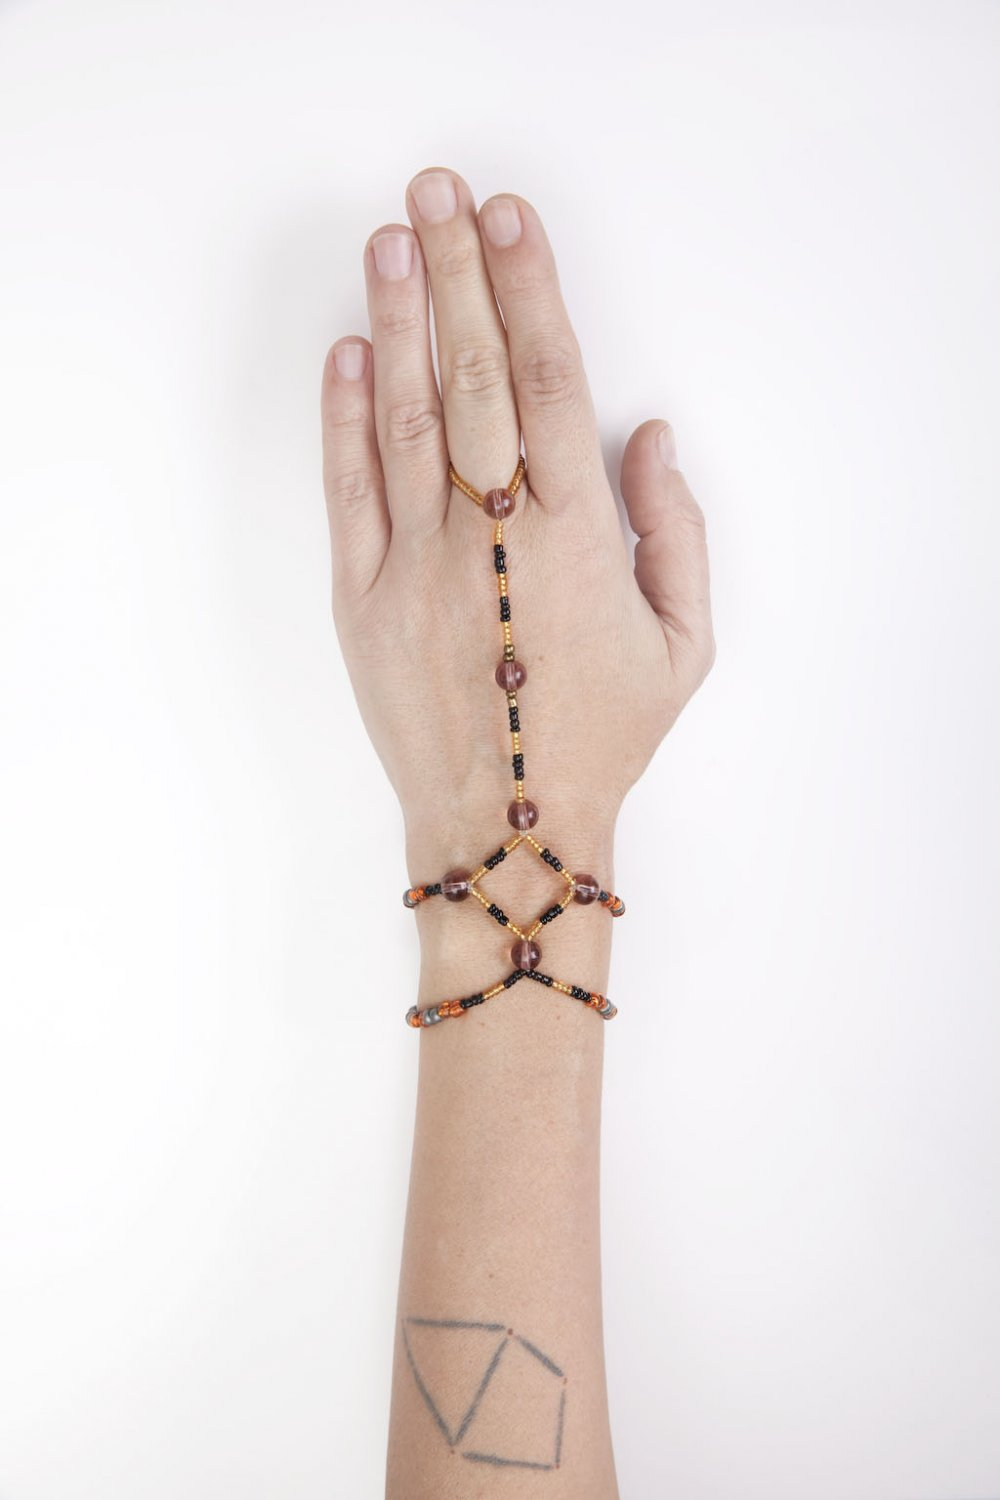 THE POETRESS | 6th Chakra Opening Bracelet